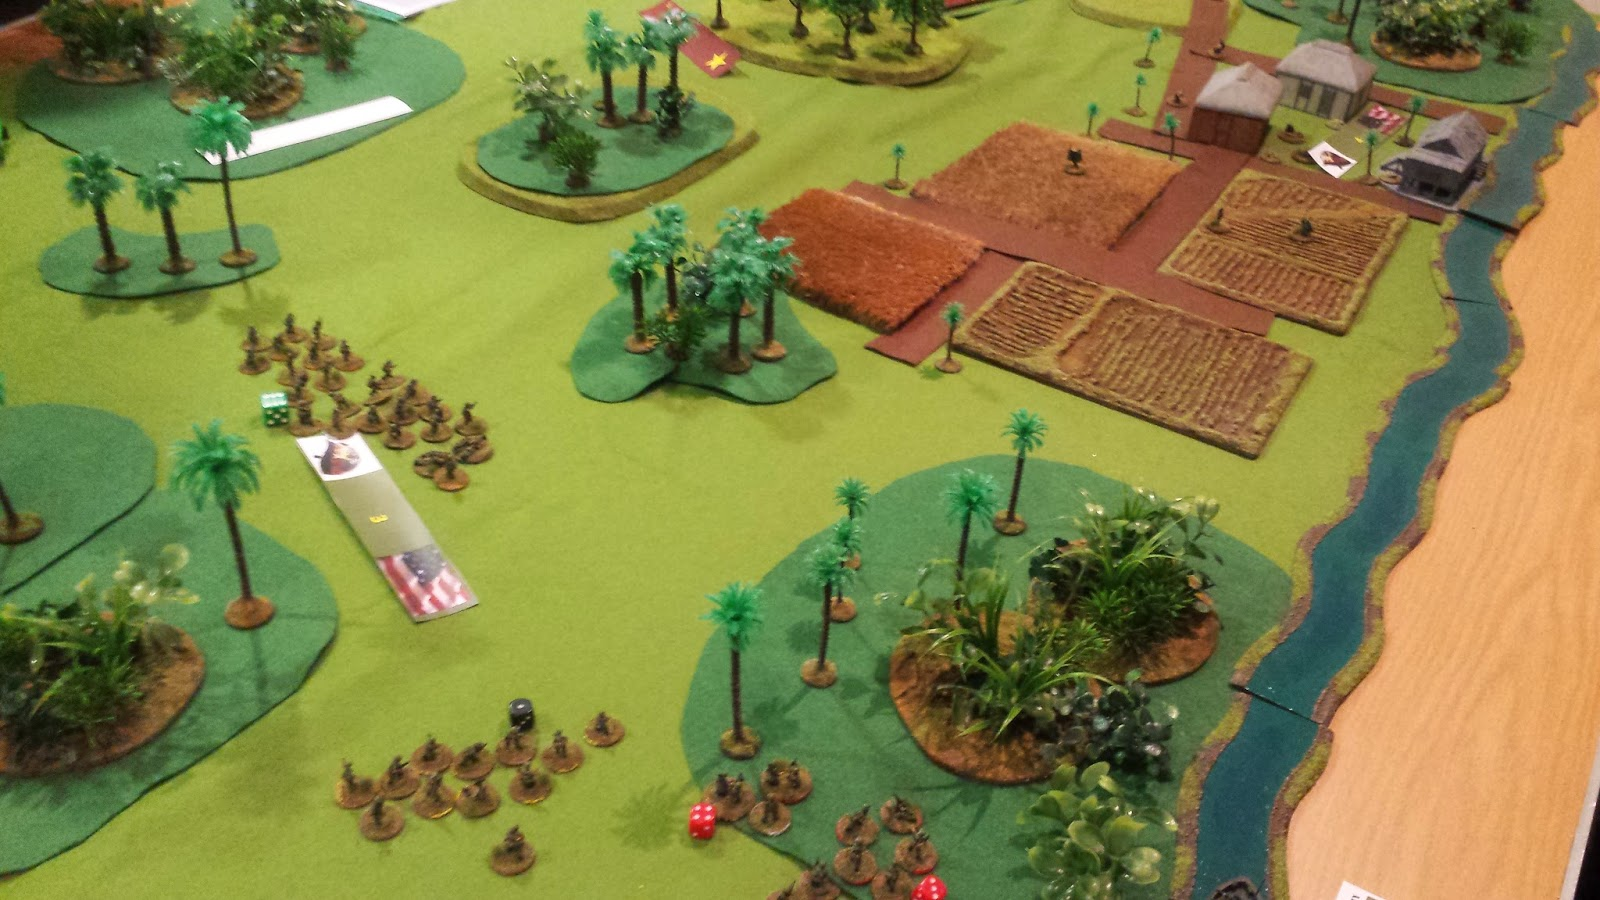 The US forces to the left of the table, where they spent most ofthe game under heavy MG fire from the troops hidden in thejungle at the top edge.